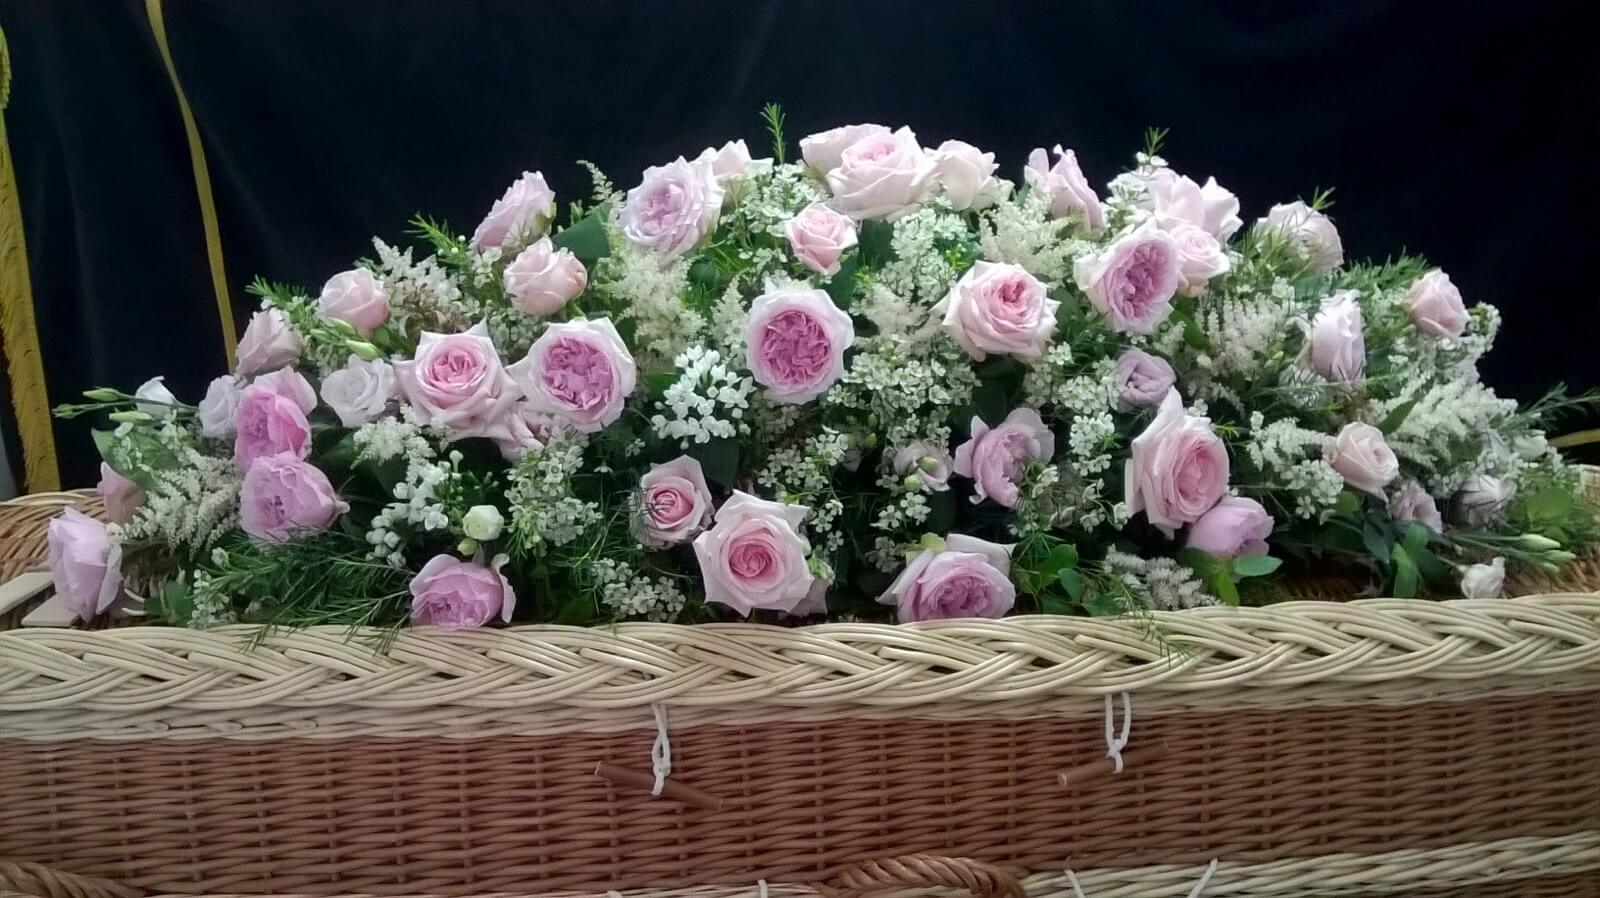 Funeral flowers beaulieu lyndhurst hythe dibden belle and blossom the flowers were amazingthey looked gorgeous on the coffin must have taken hours of work what an artist and then the bouquets we couldnt be izmirmasajfo